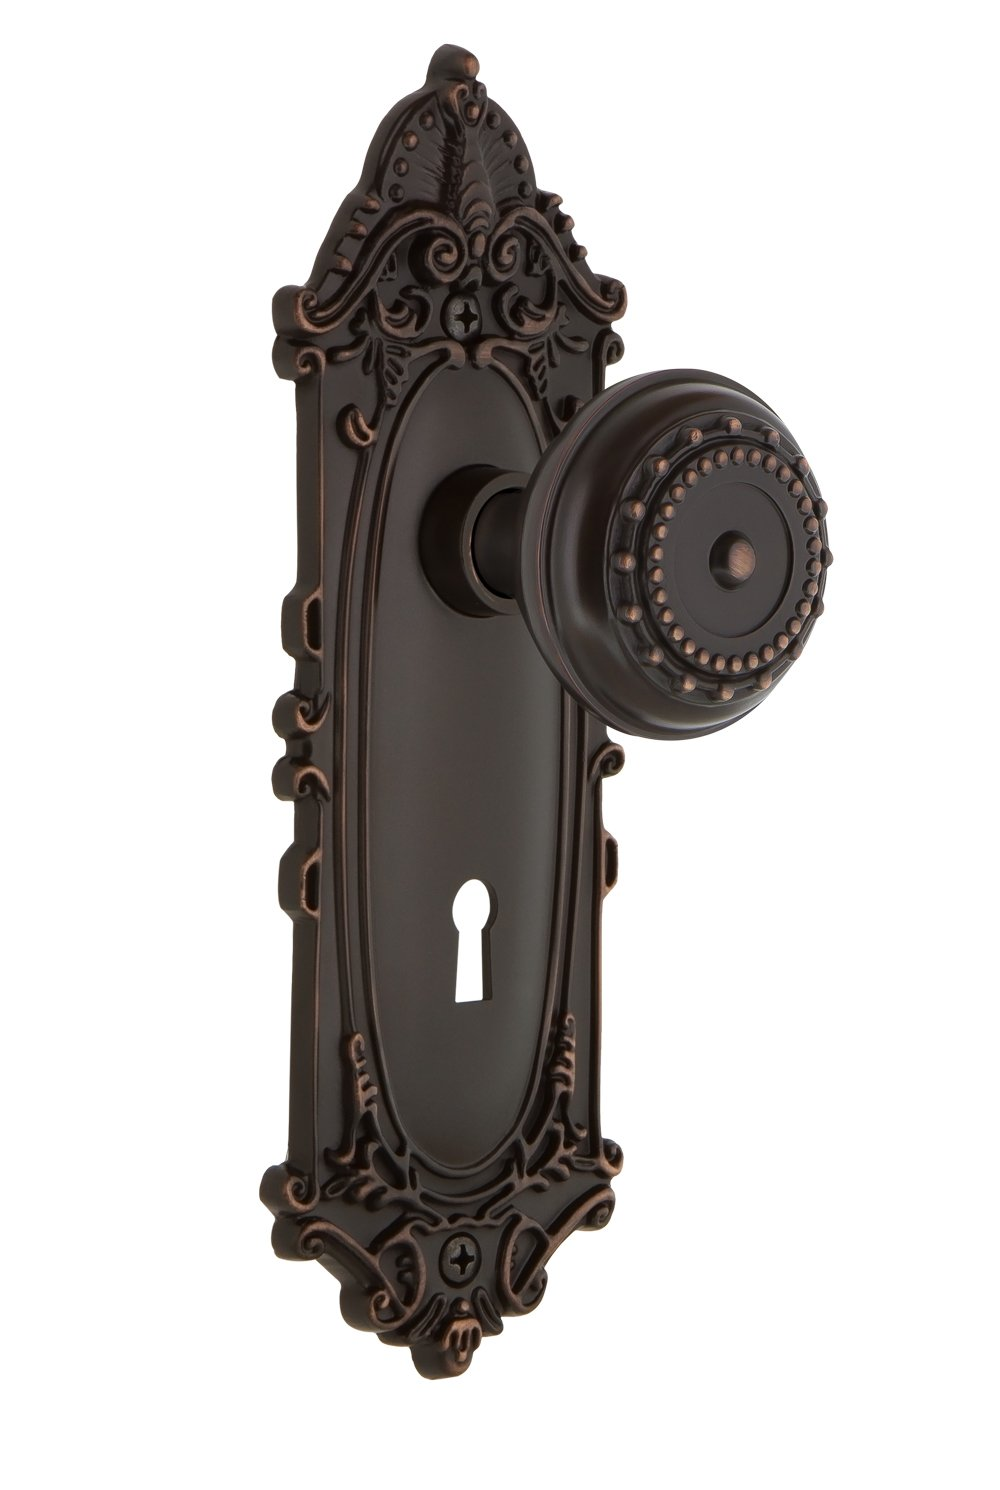 Timeless Bronze Nostalgic Warehouse Victorian Plate with Meadows Knob 2.25 Mortise